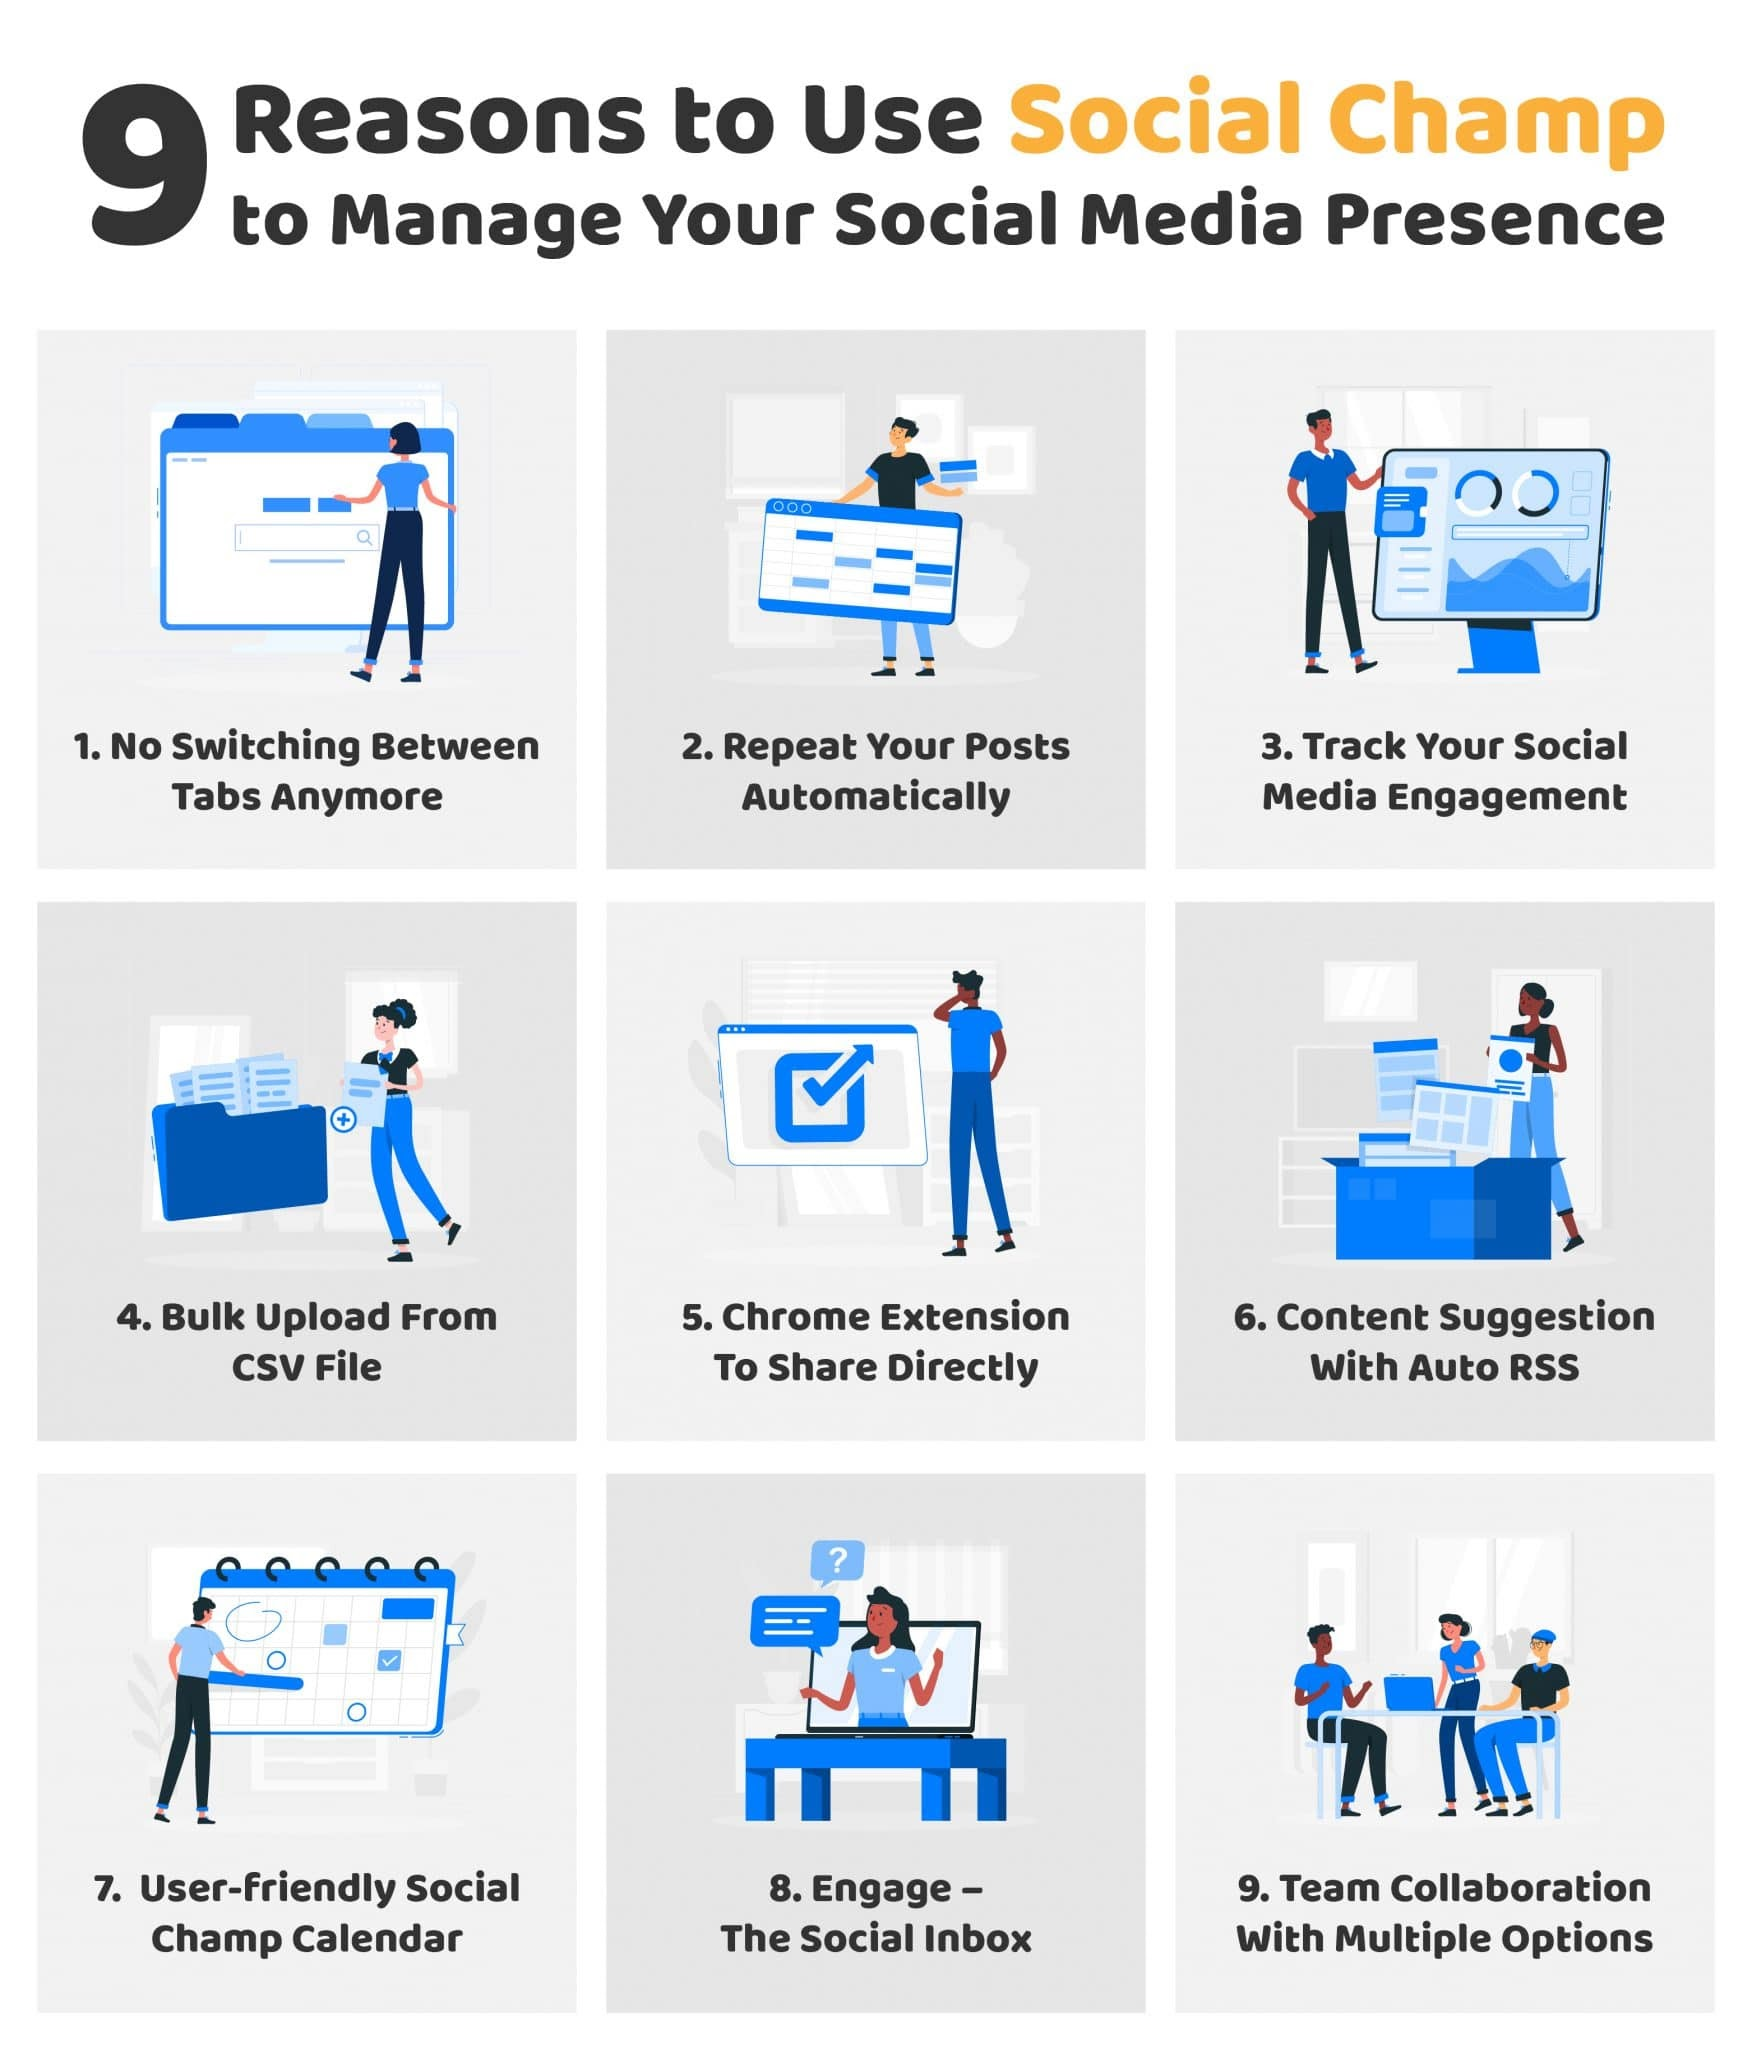 9 Reasons to use social champ to manage your social media presence #Infographic